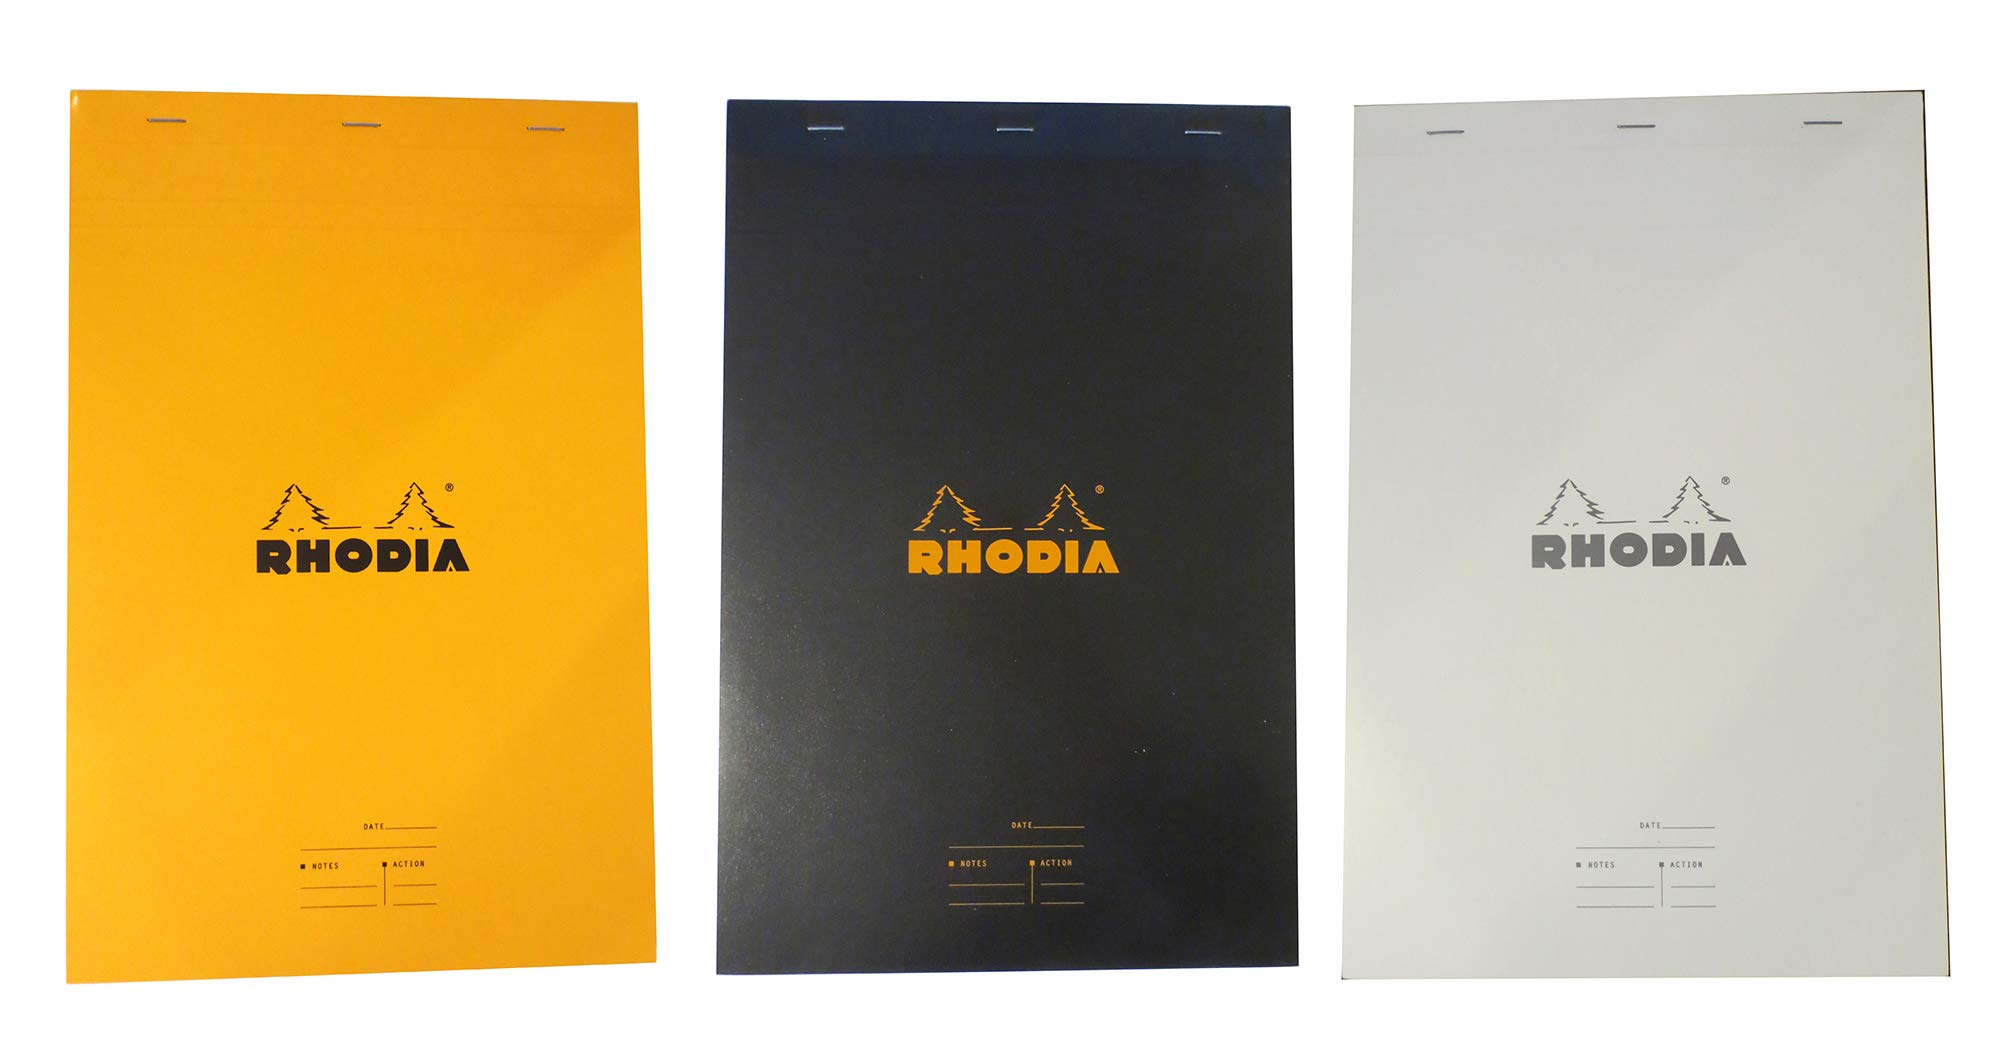 Rhodia Meeting Pad 8 x 12 in, Pack of 3, Black White and Orange by Rhodia